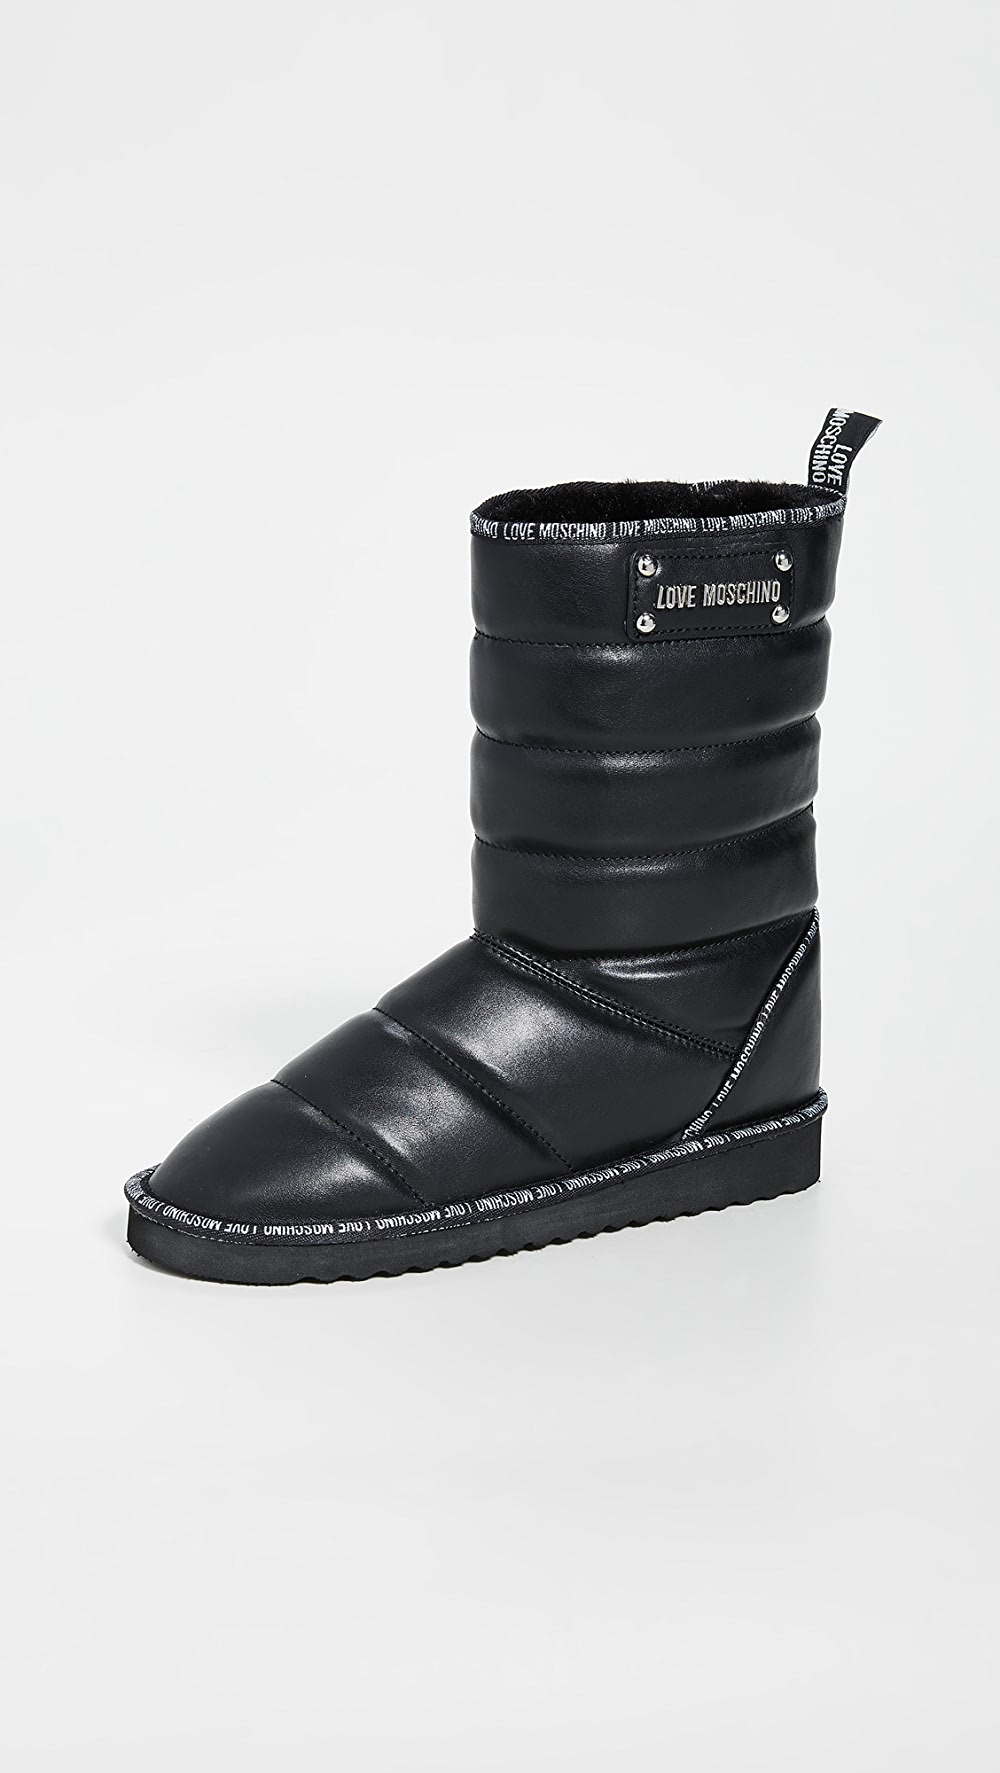 Romantic Moschino - Quilted Boots Latest Technology